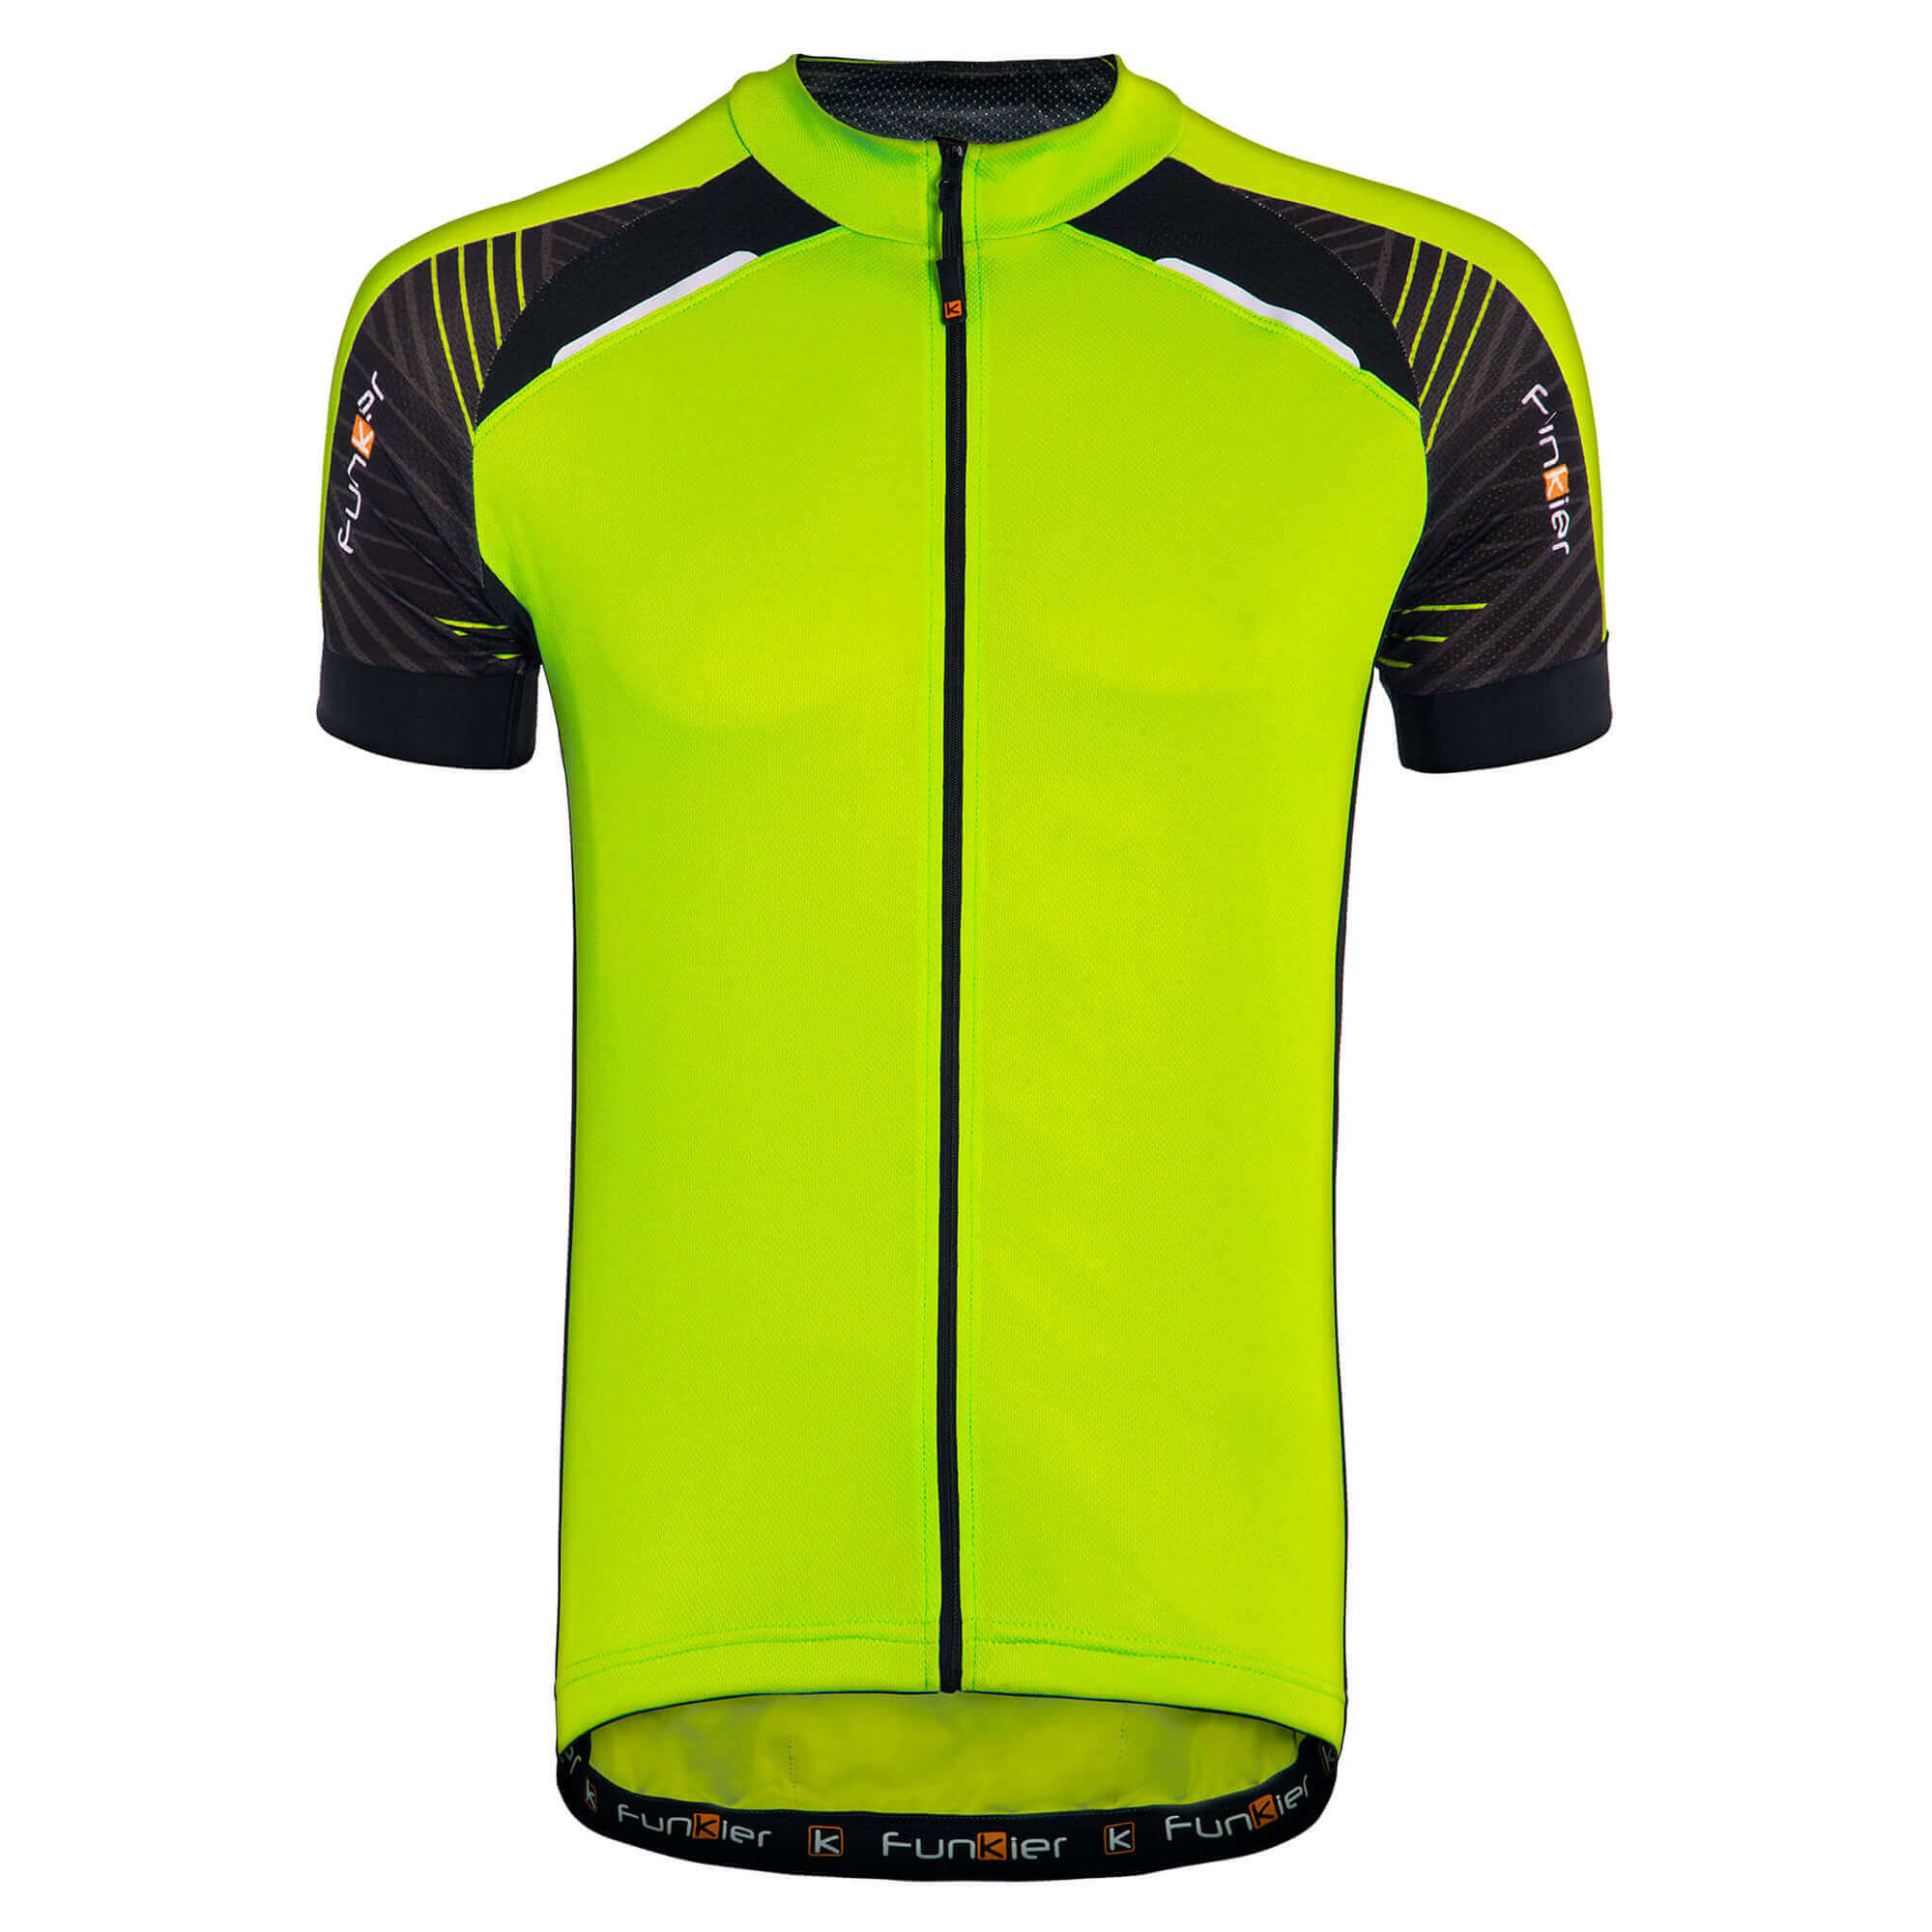 Firenze Neon Yellow - Funkier Bike 521a62db6